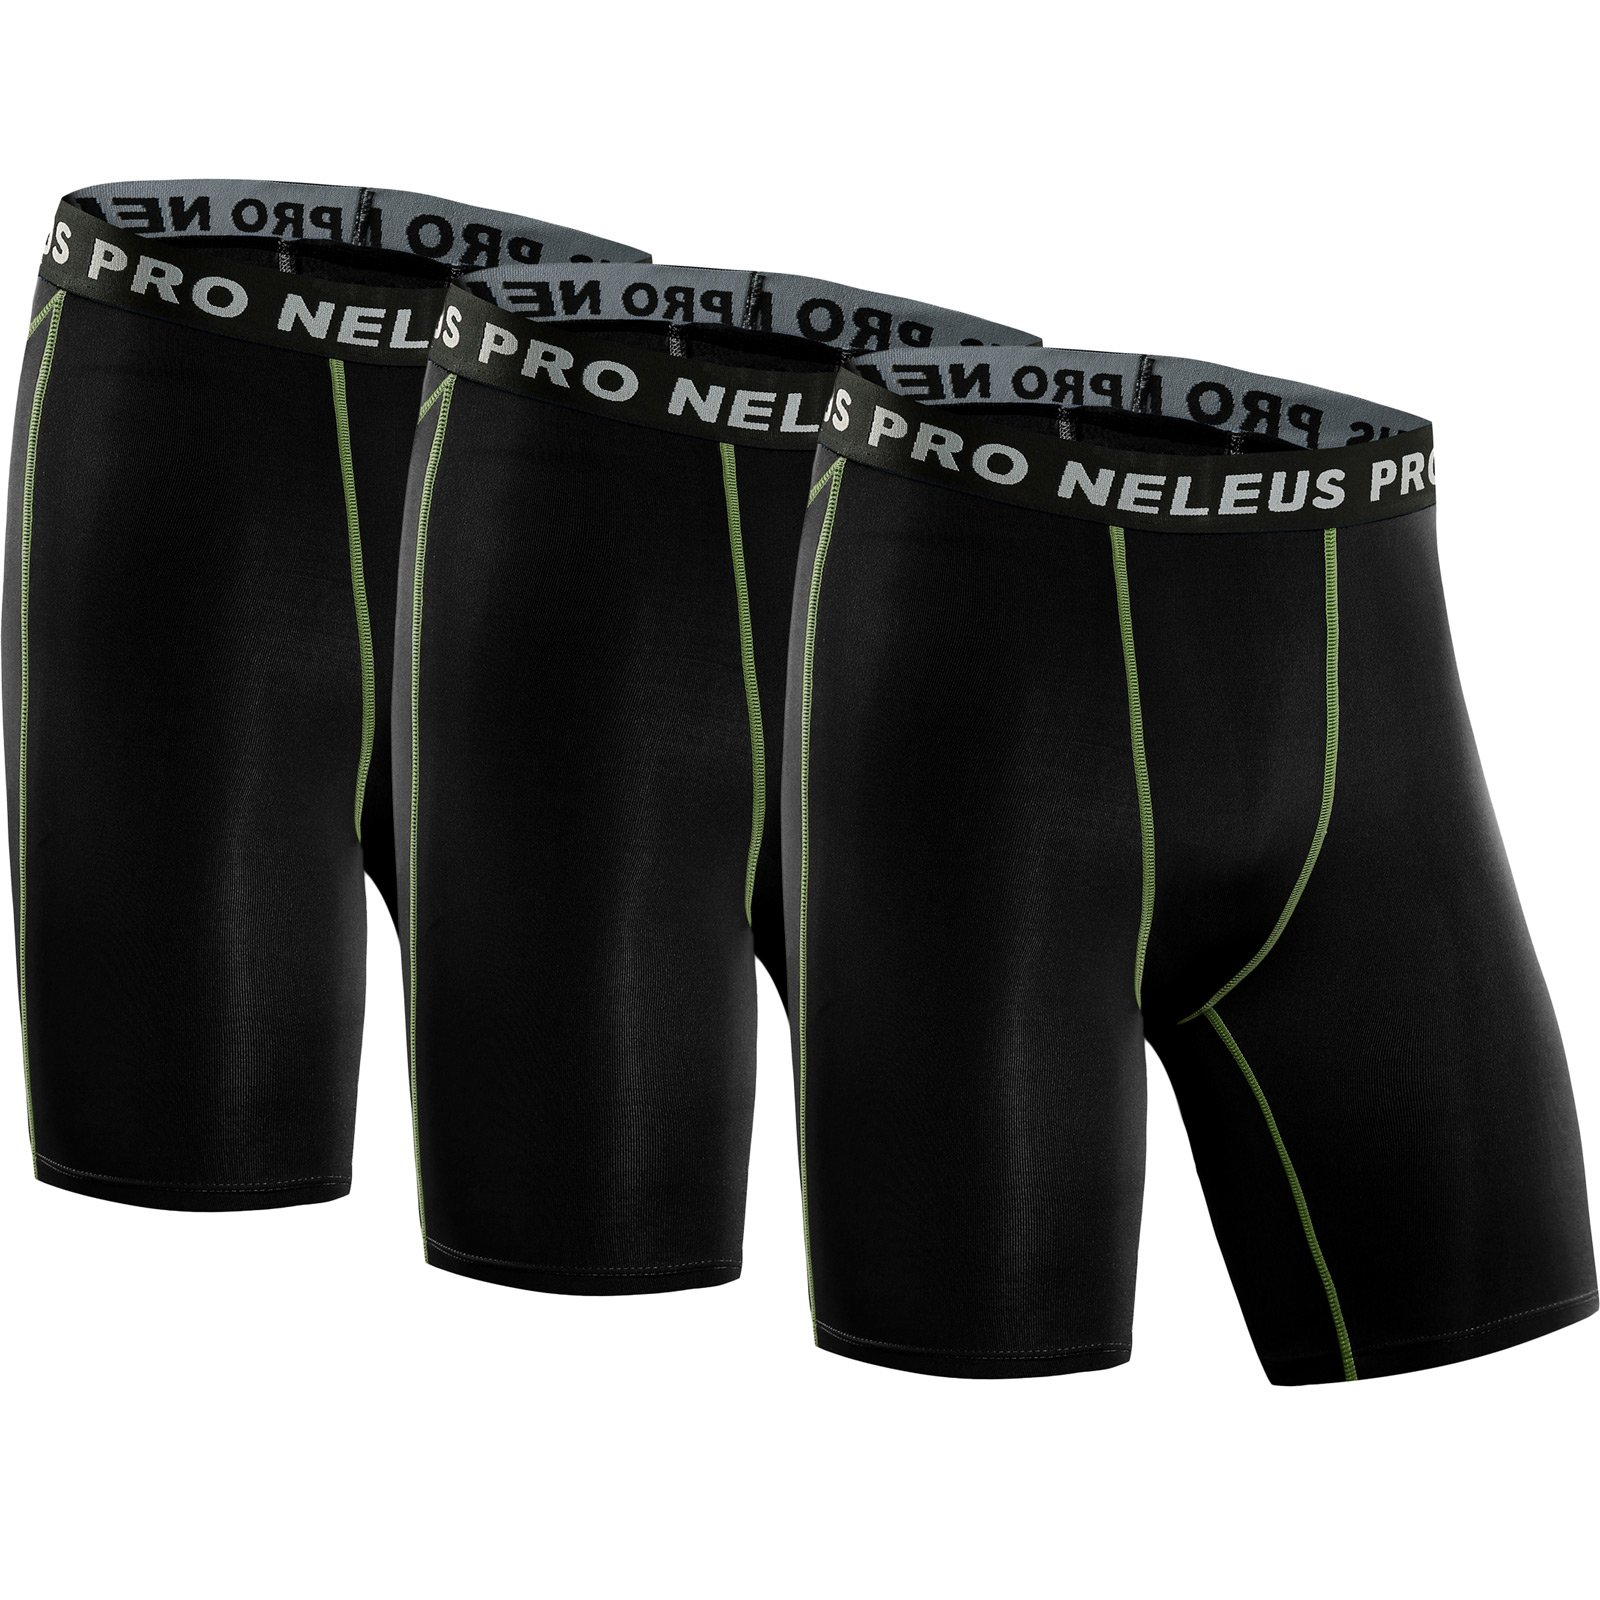 Neleus Men's 3 Pack Compression Short,047,Black,US 2XL,EU 3XL by Neleus